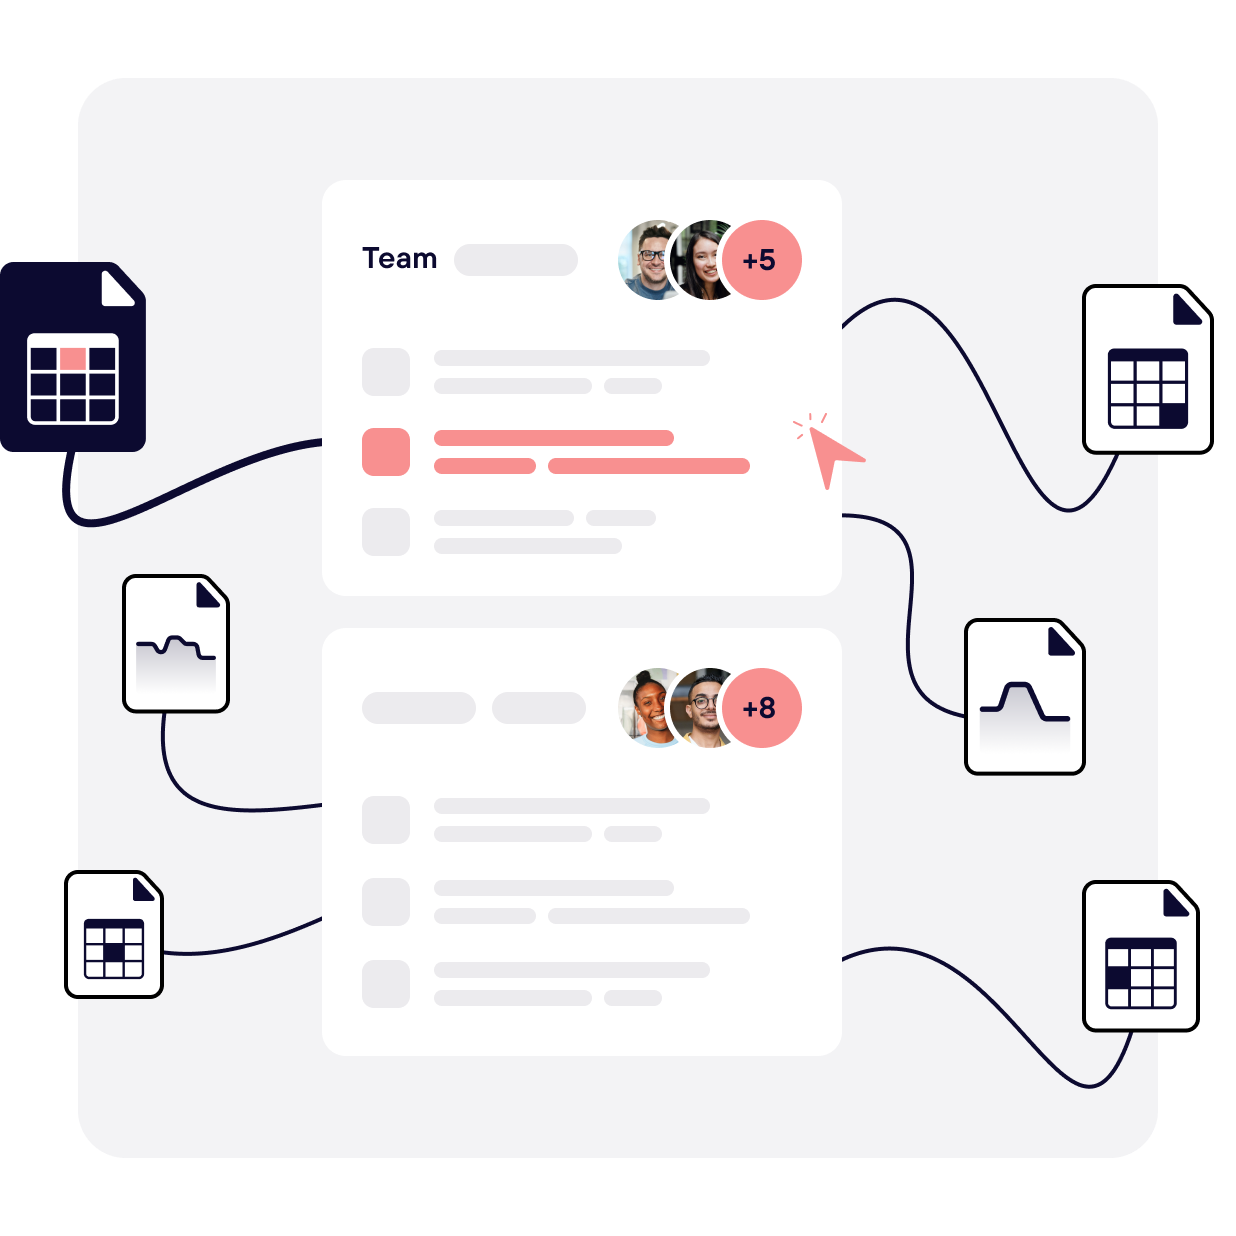 Use manual resources to map infrastructure costs and historical usage to teams and business results